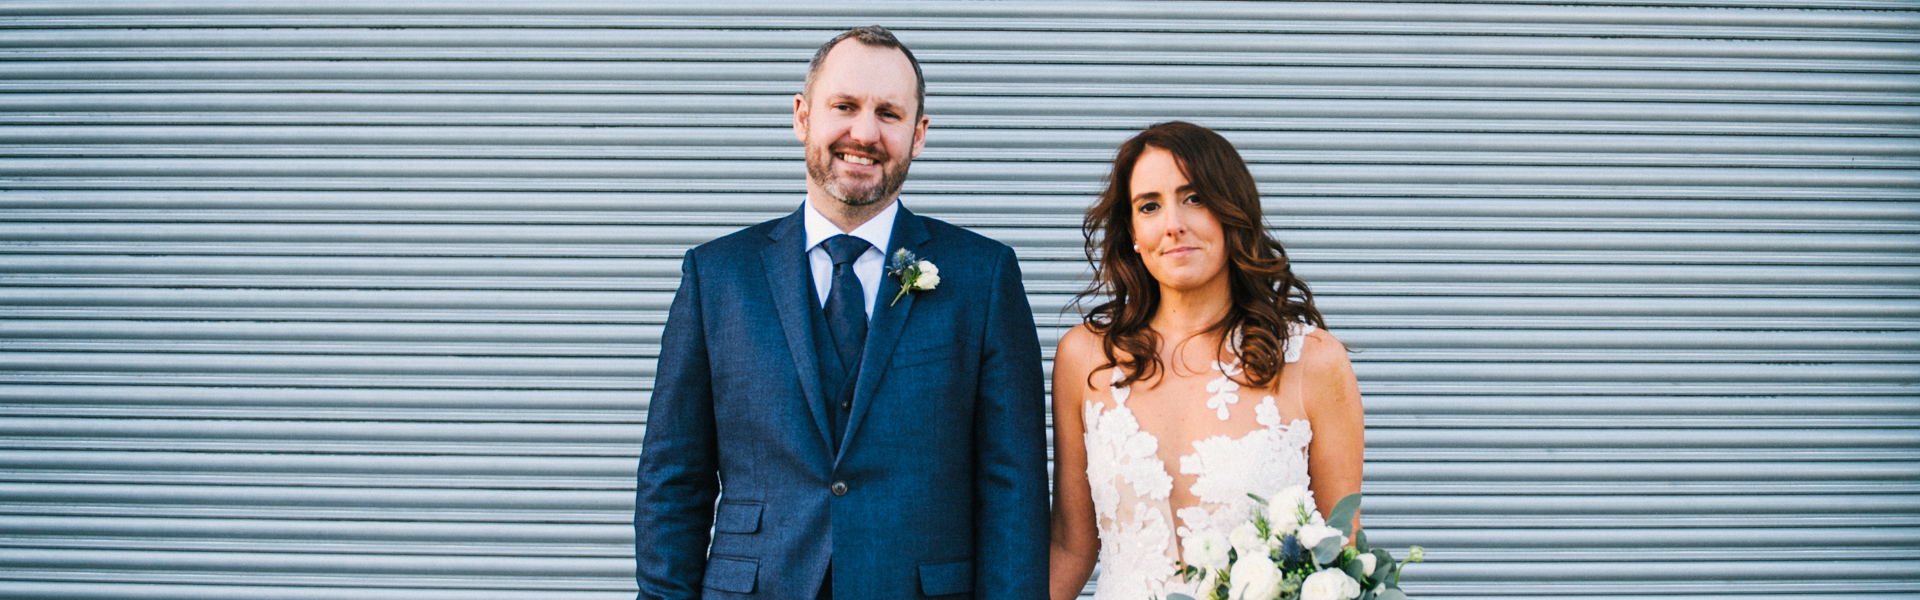 Fun wedding photographer Brighton, Pangdean Barn Brighton